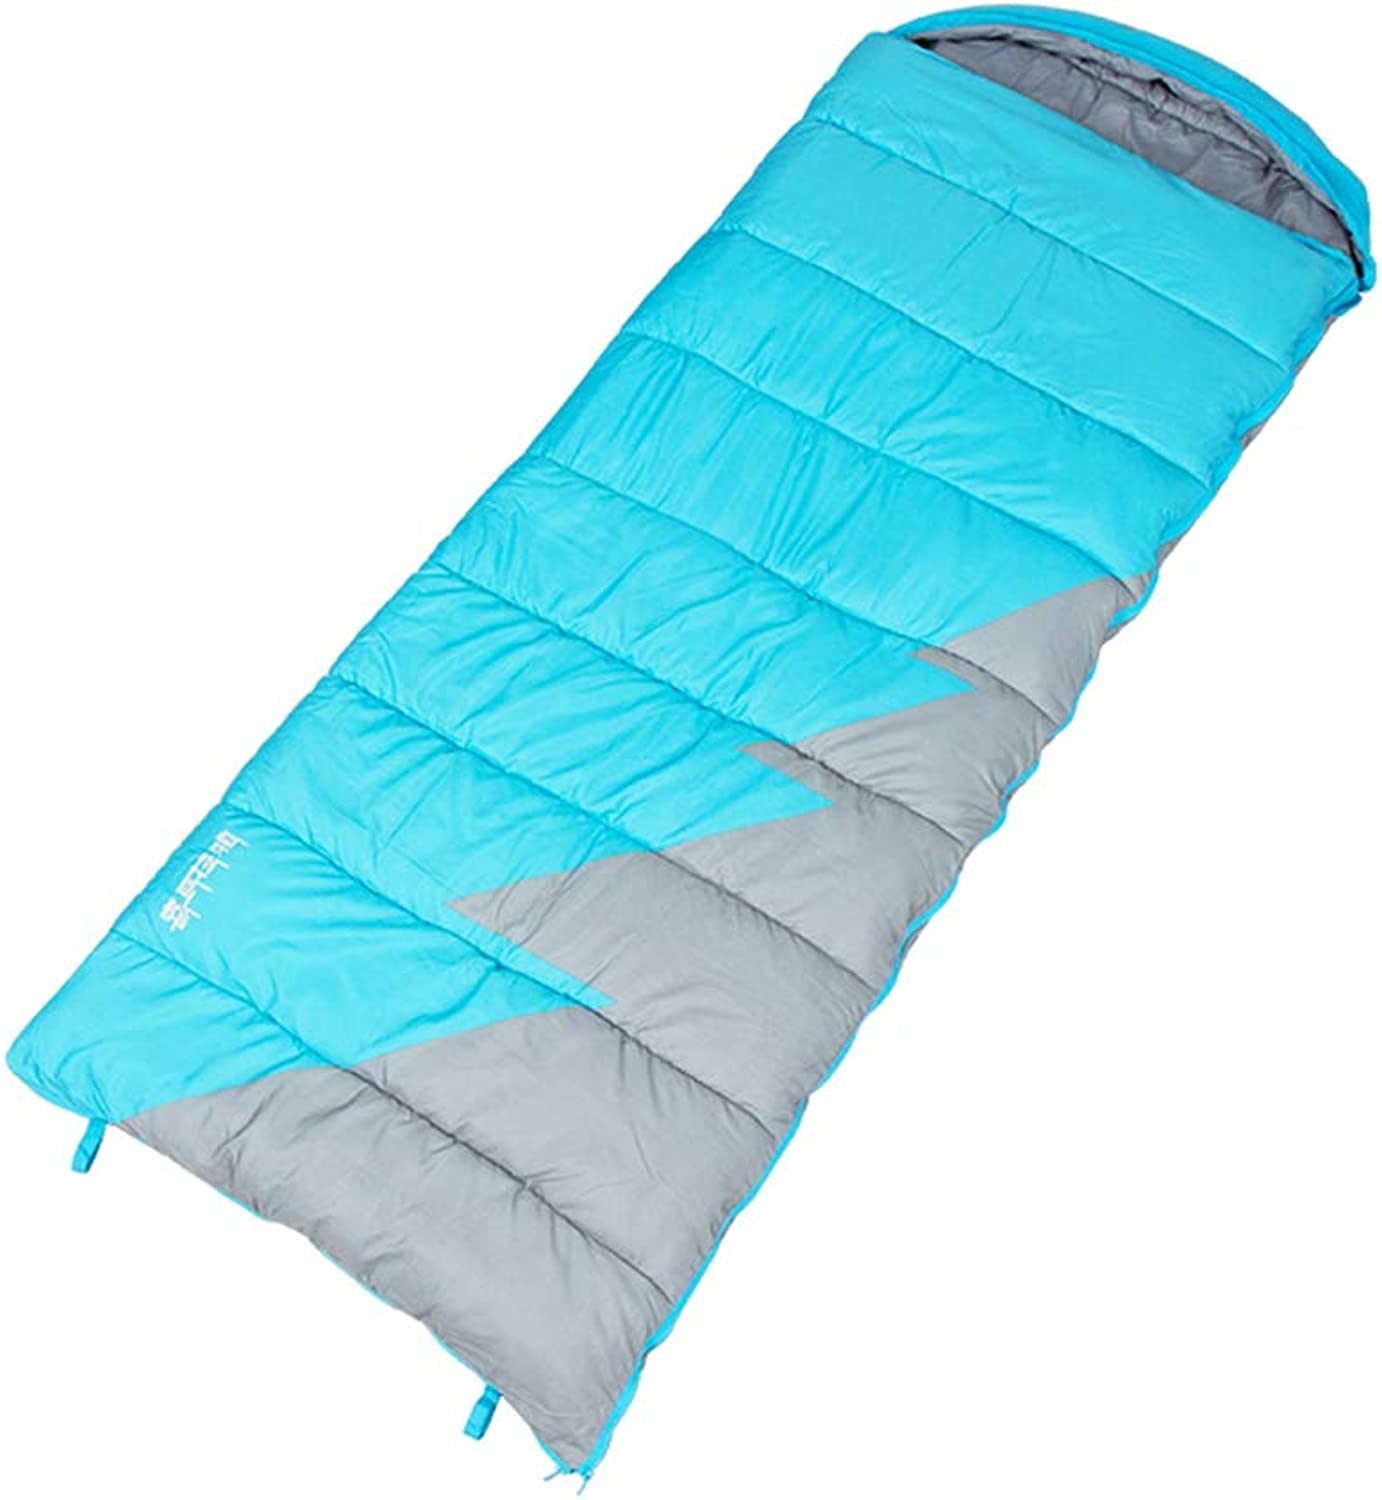 Sleeping Bag, Warm Comfortable Sleep Sack Lightweight Portable Single,Double Camping Sleep Bags Great for When It's Cold Outdoors,B,450g